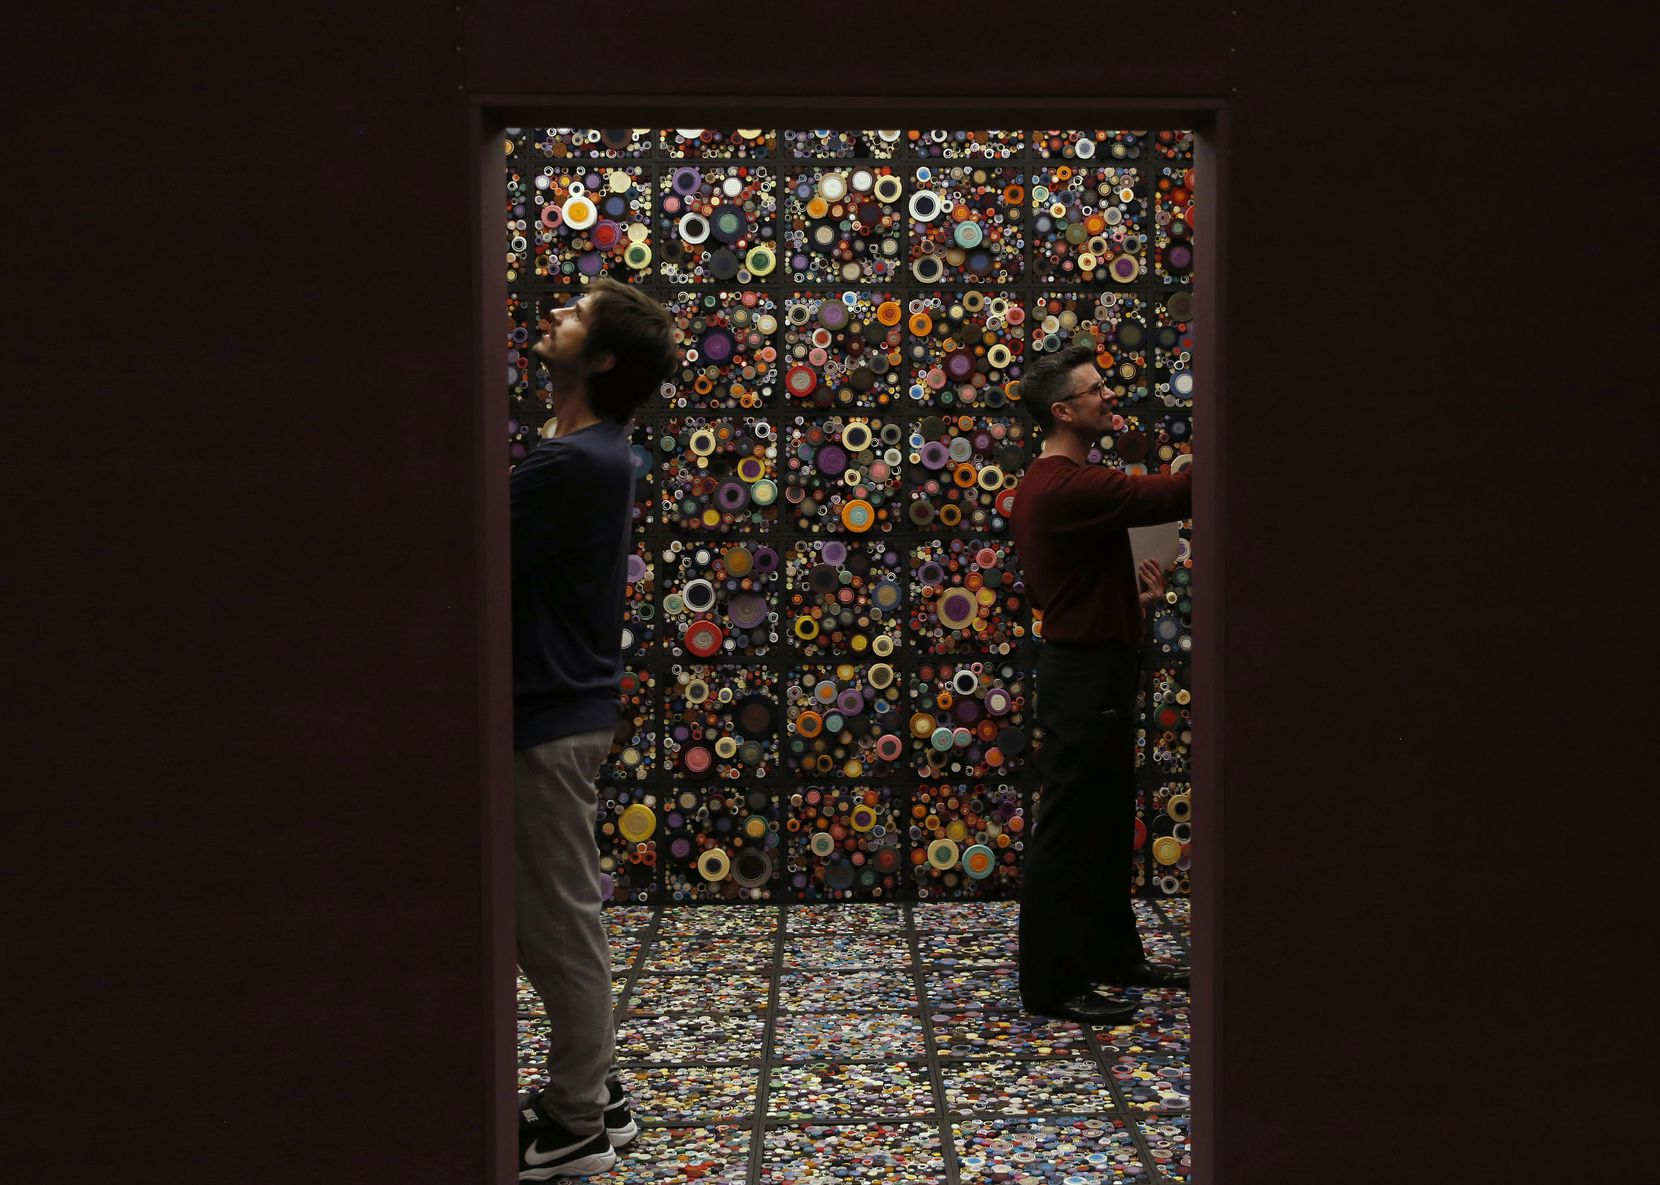 """The artists William Ladd (left) and Steven Ladd (right) stand inside their work """"Scroll Space"""" at """"Speechless: Different by Design"""" at the Dallas Museum of Art on Tuesday, Nov. 5, 2019."""